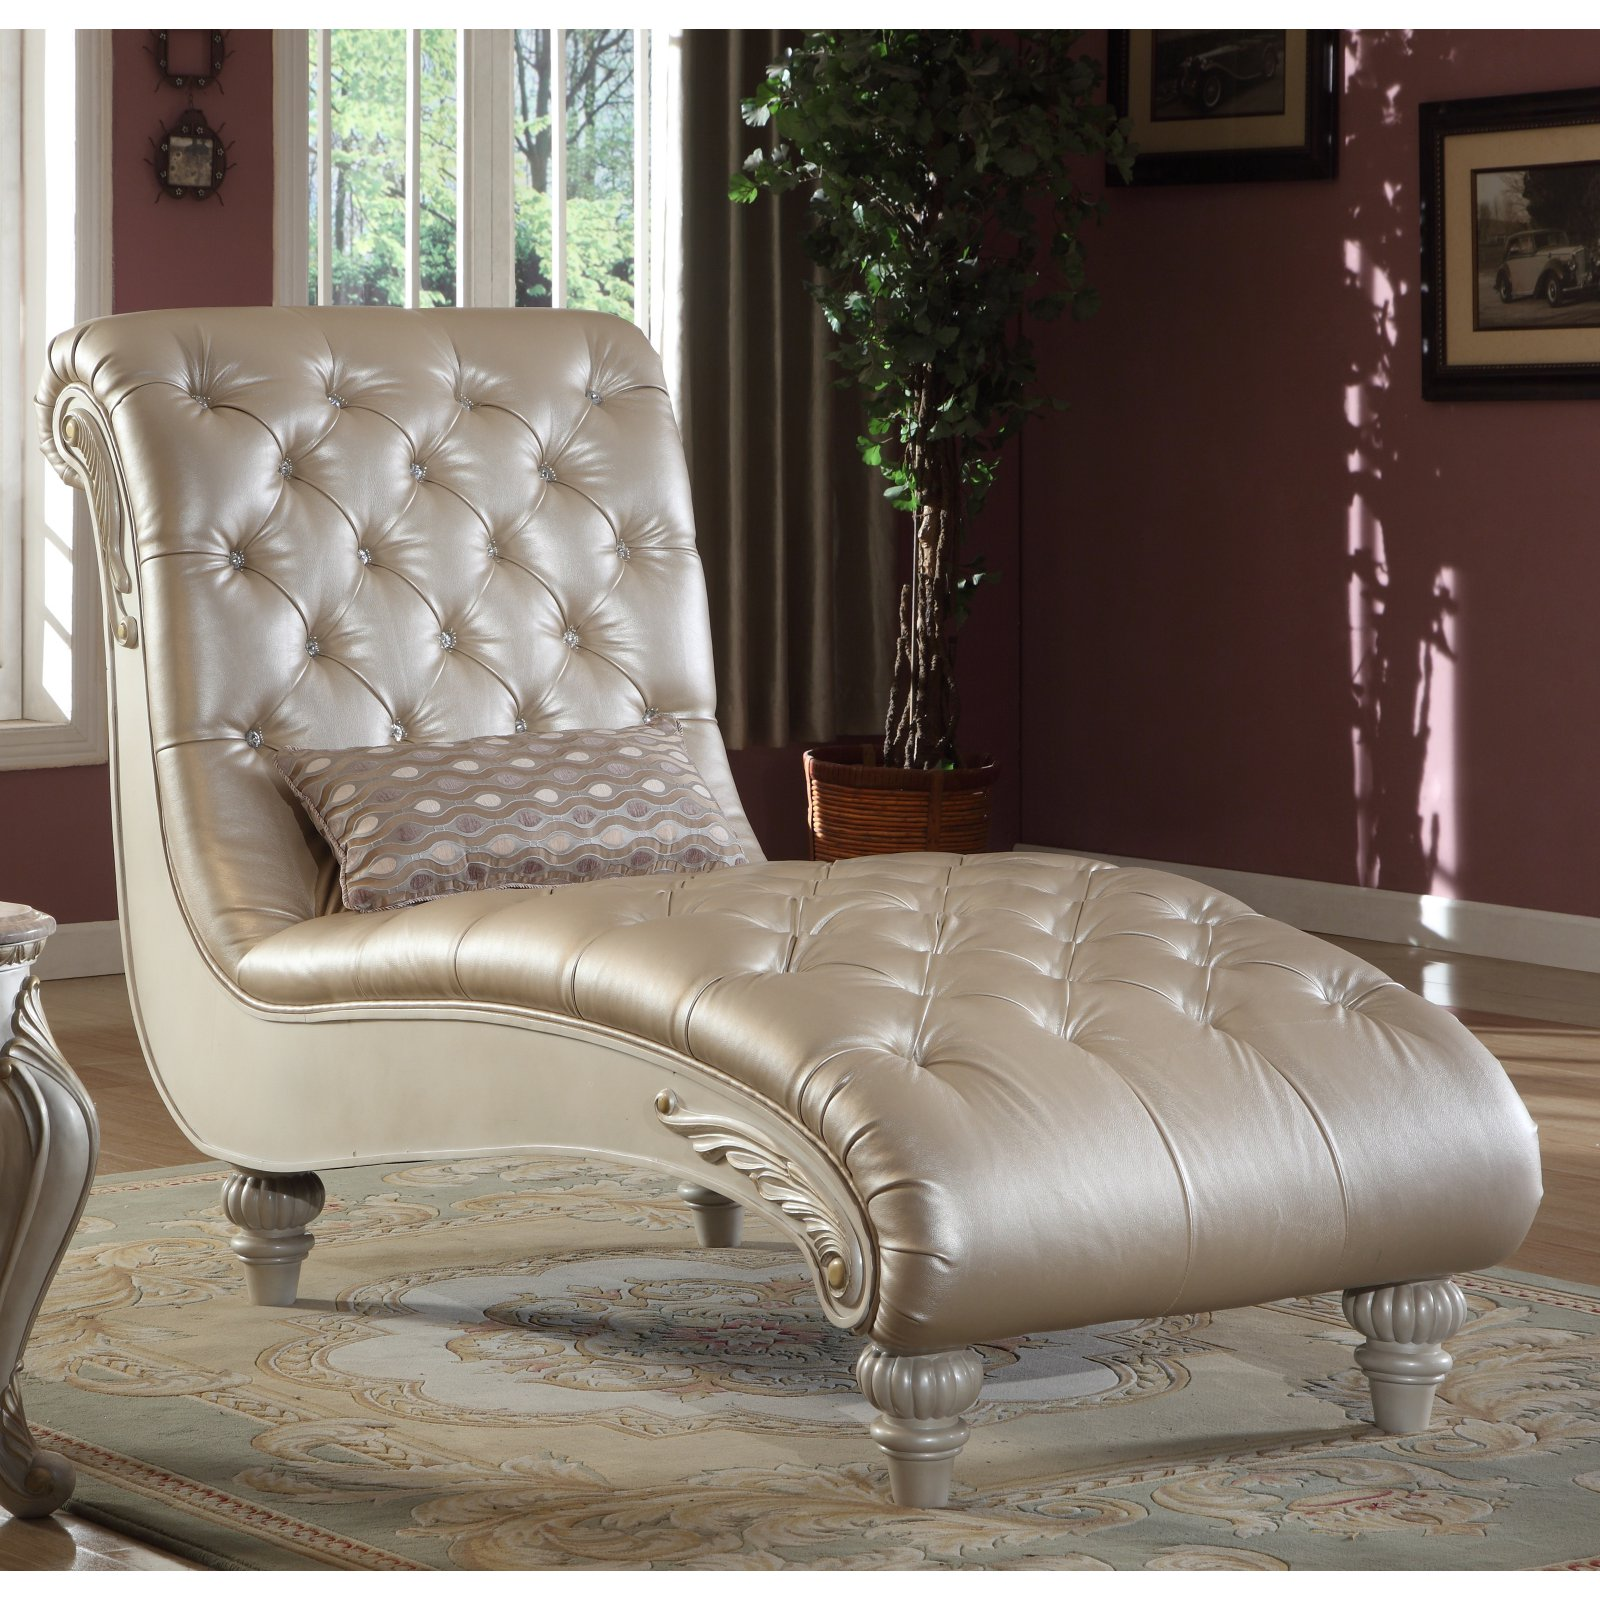 Meridian Furniture Inc Marquee Indoor Chaise Lounge by Chaise Lounges